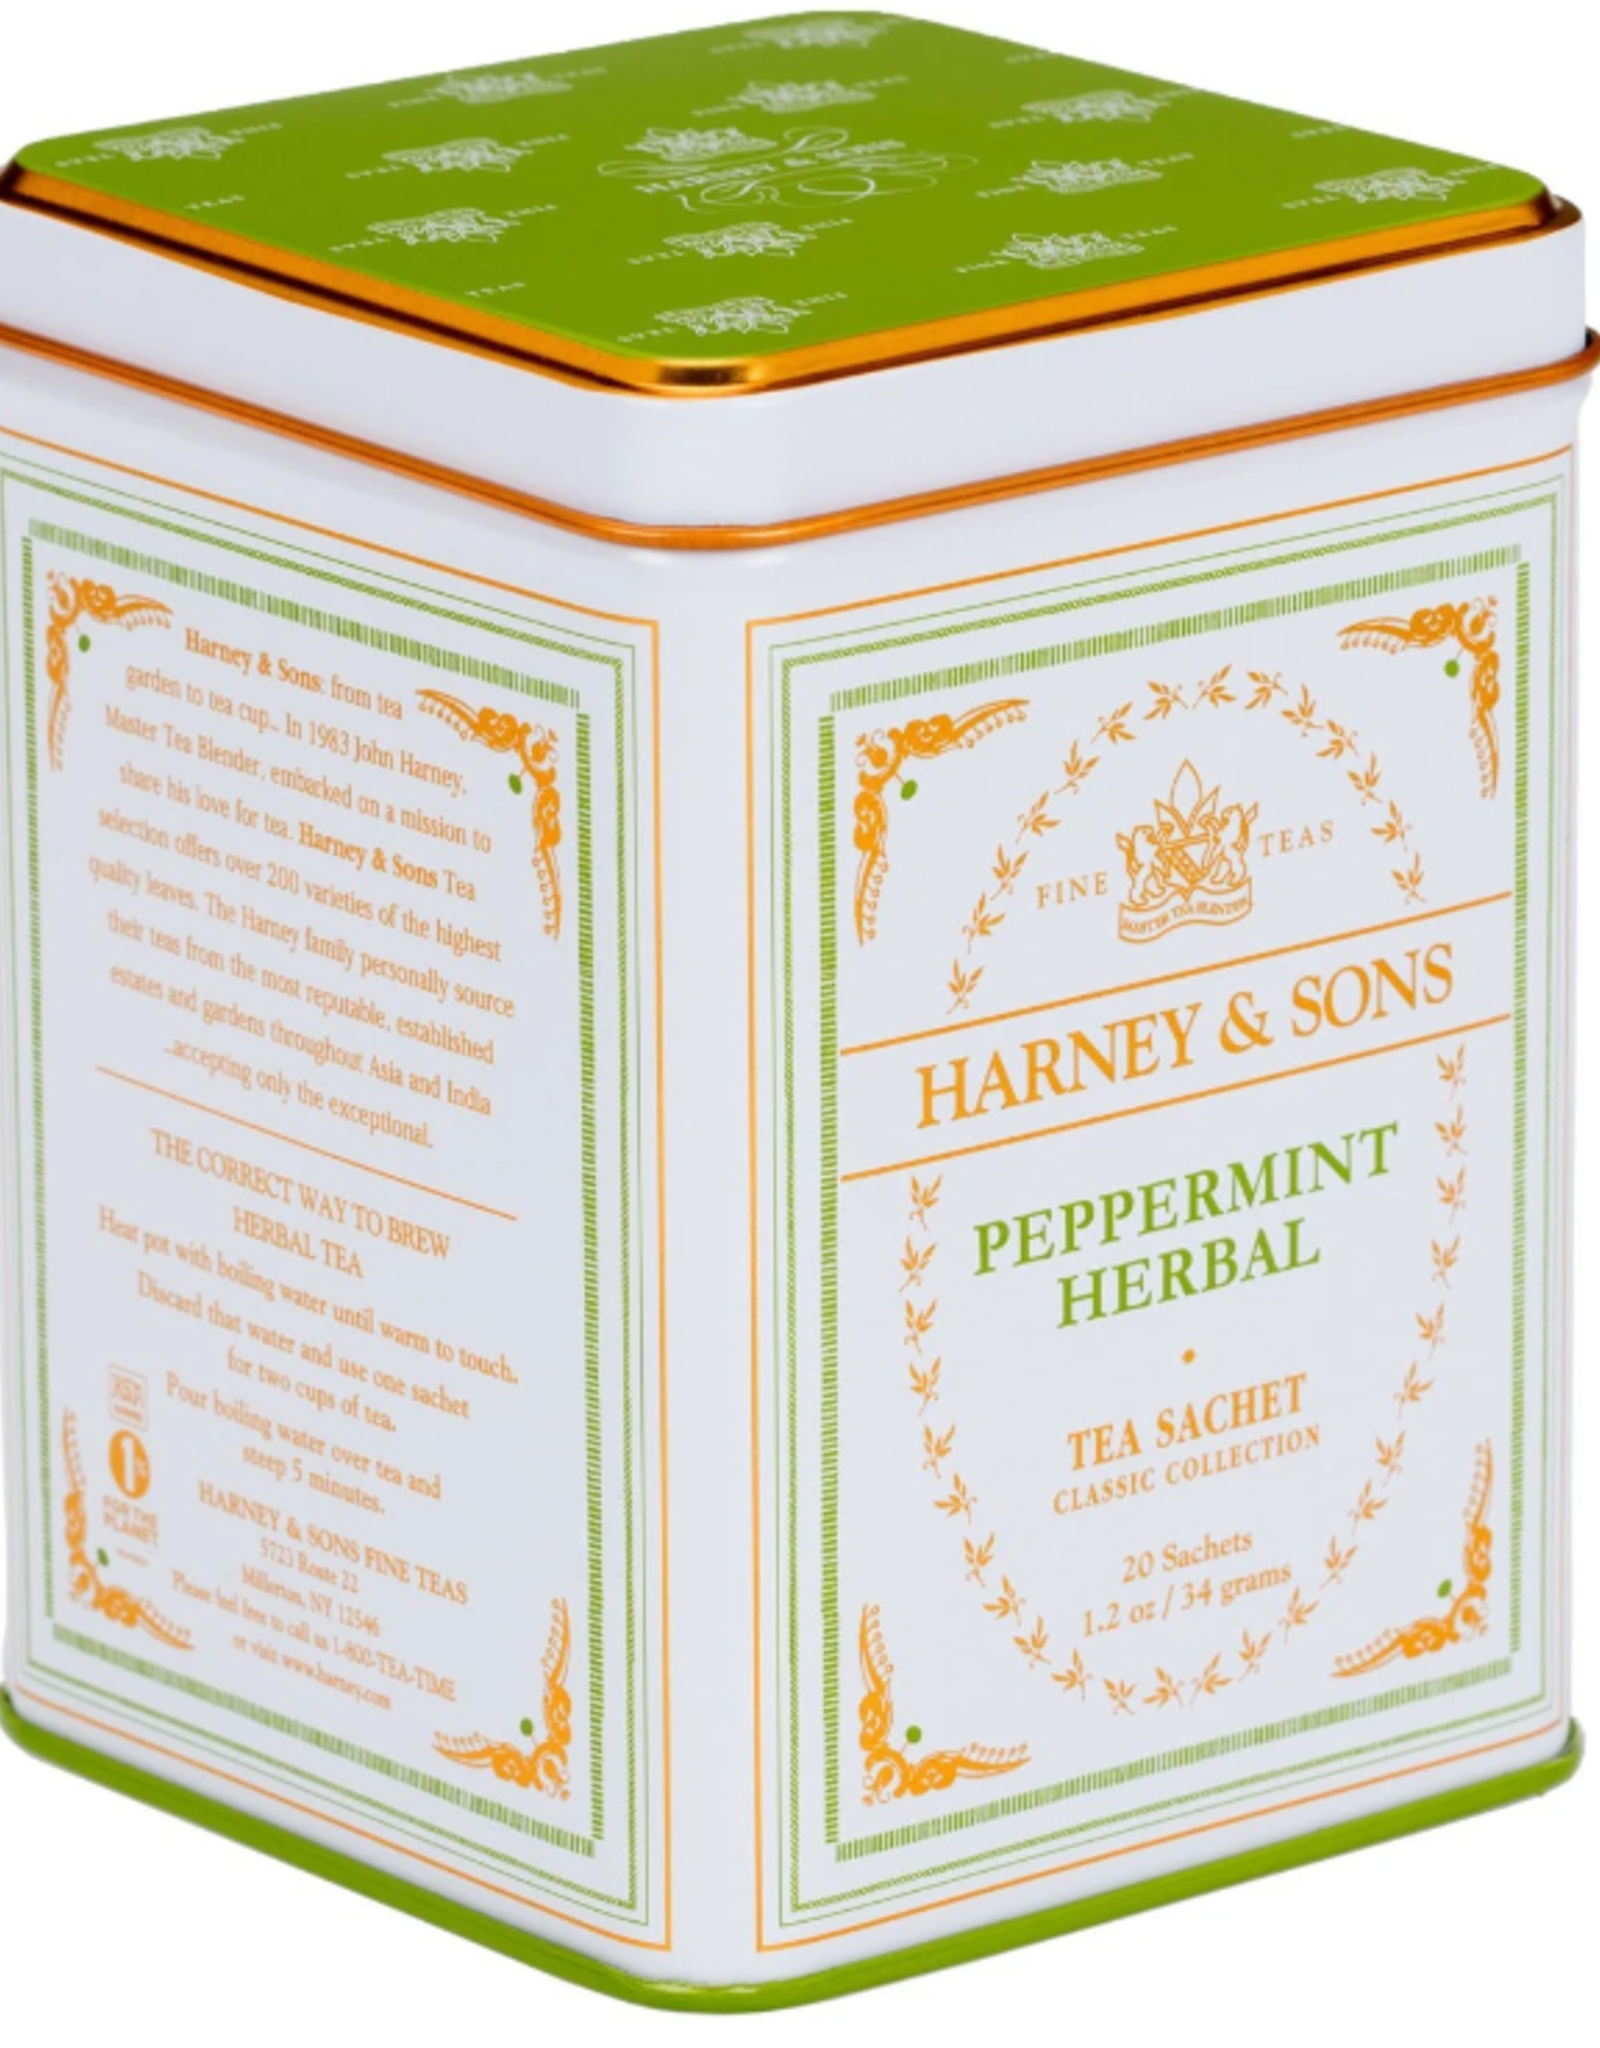 Harney & Sons Peppermint Herbal Tea, Classic Tin